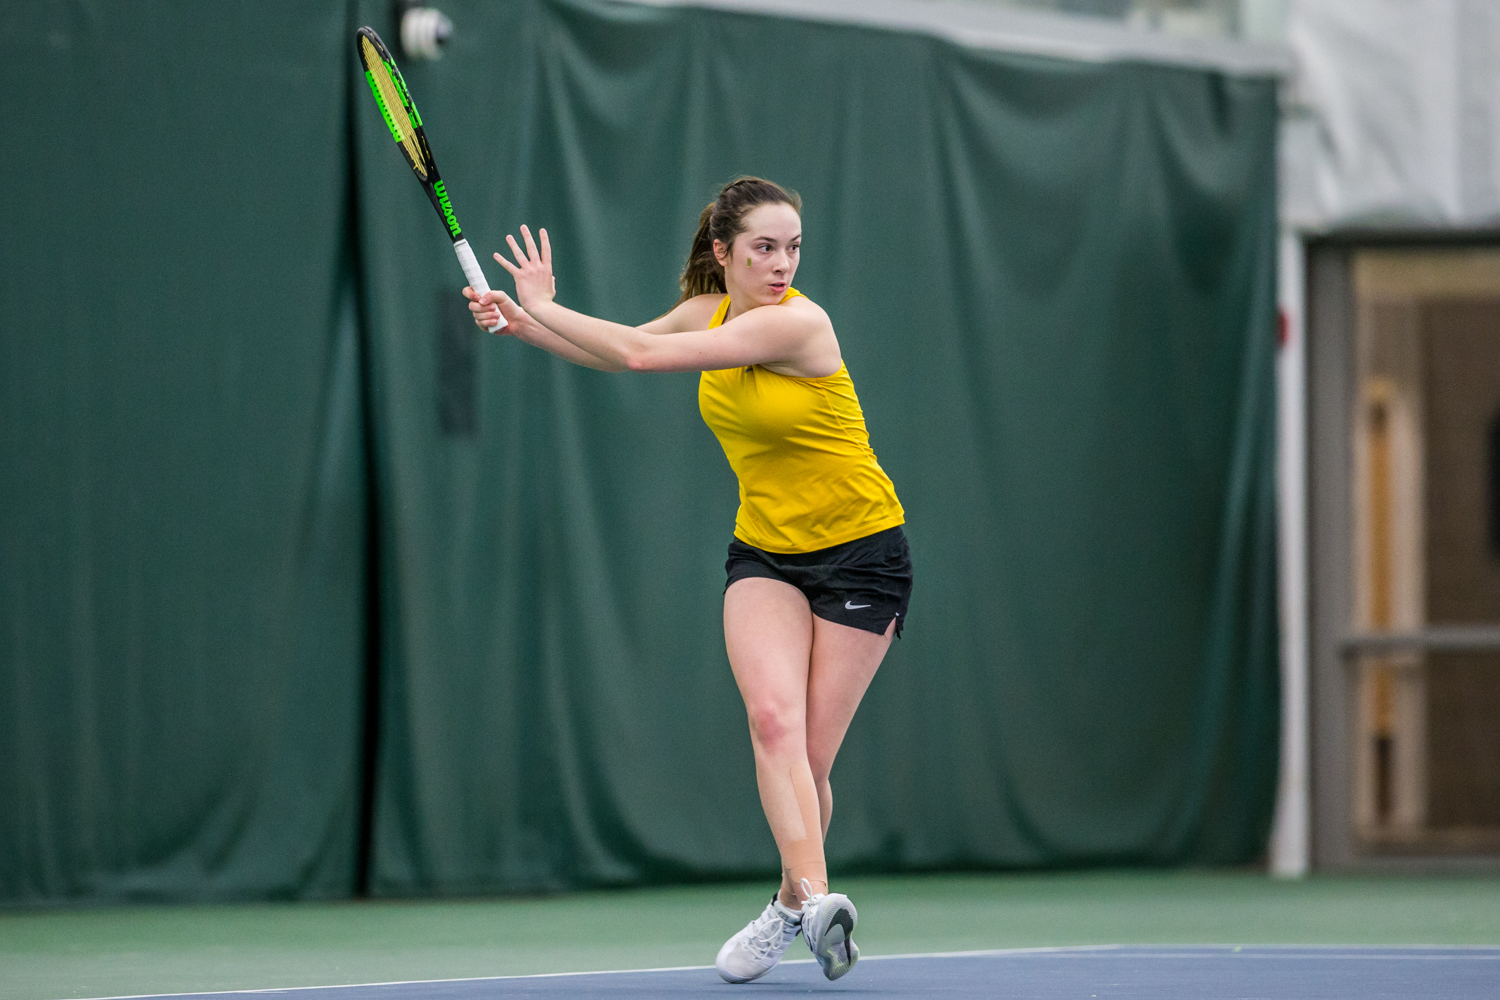 Iowa%27s+Samantha+Mannix+hits+a+forehand+during+a+women%27s+tennis+matchup+between+Iowa+and+Iowa+State+at+the+Hawkeye+Tennis+and+Recreation+Complex+on+Friday%2C+February+8%2C+2019.++The+Hawkeyes+dropped+the+doubles+point+but+swept+singles+matches%2C+defeating+the+Cyclones+4-1.